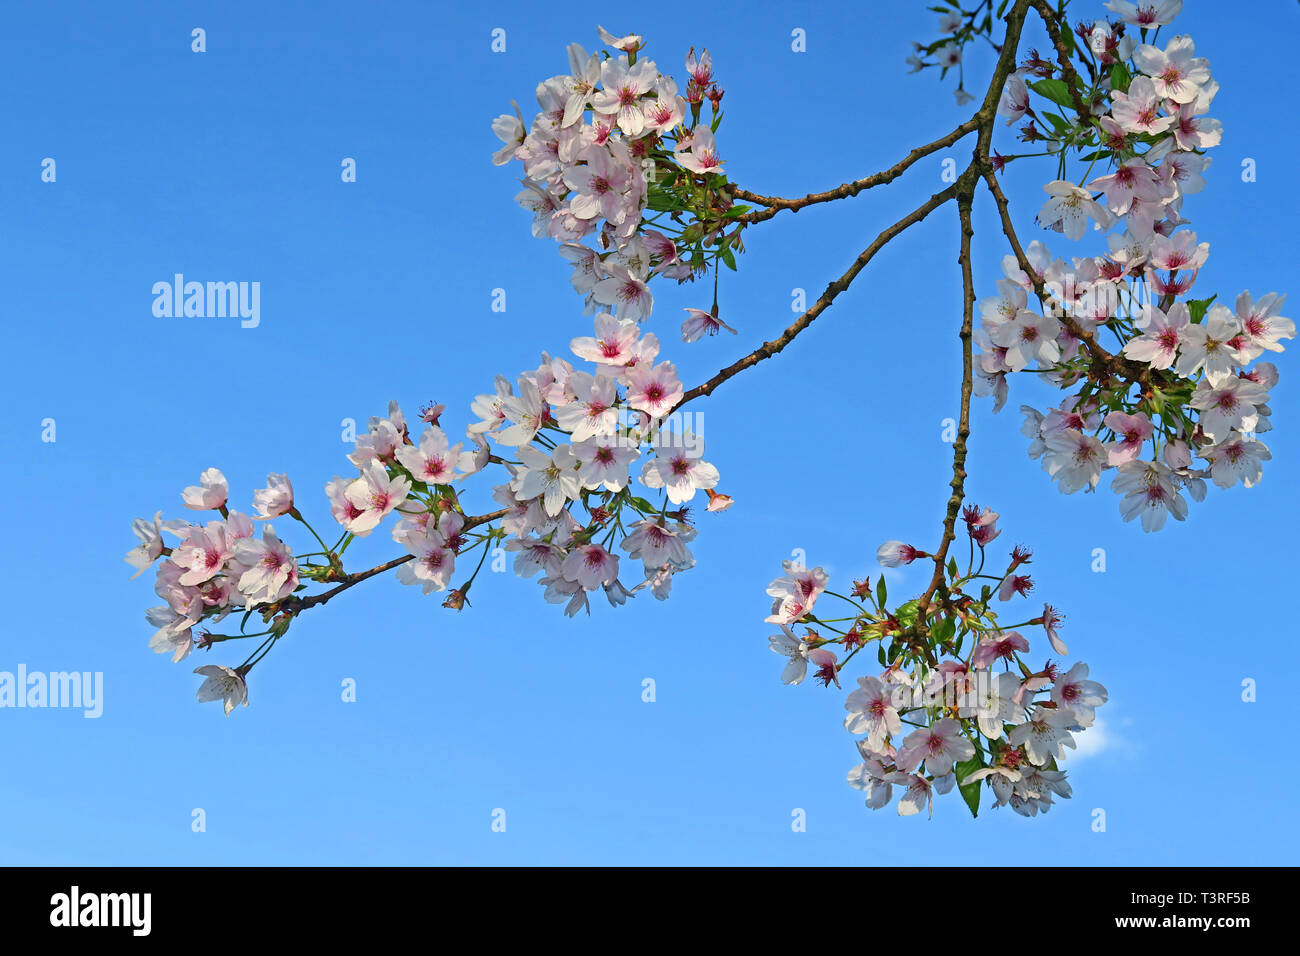 Spring Cherry Blossom pink purple and white, on tree branches in Norcott Brook near Hatton, Warrington, Cheshire, North West England, UK, - Stock Image